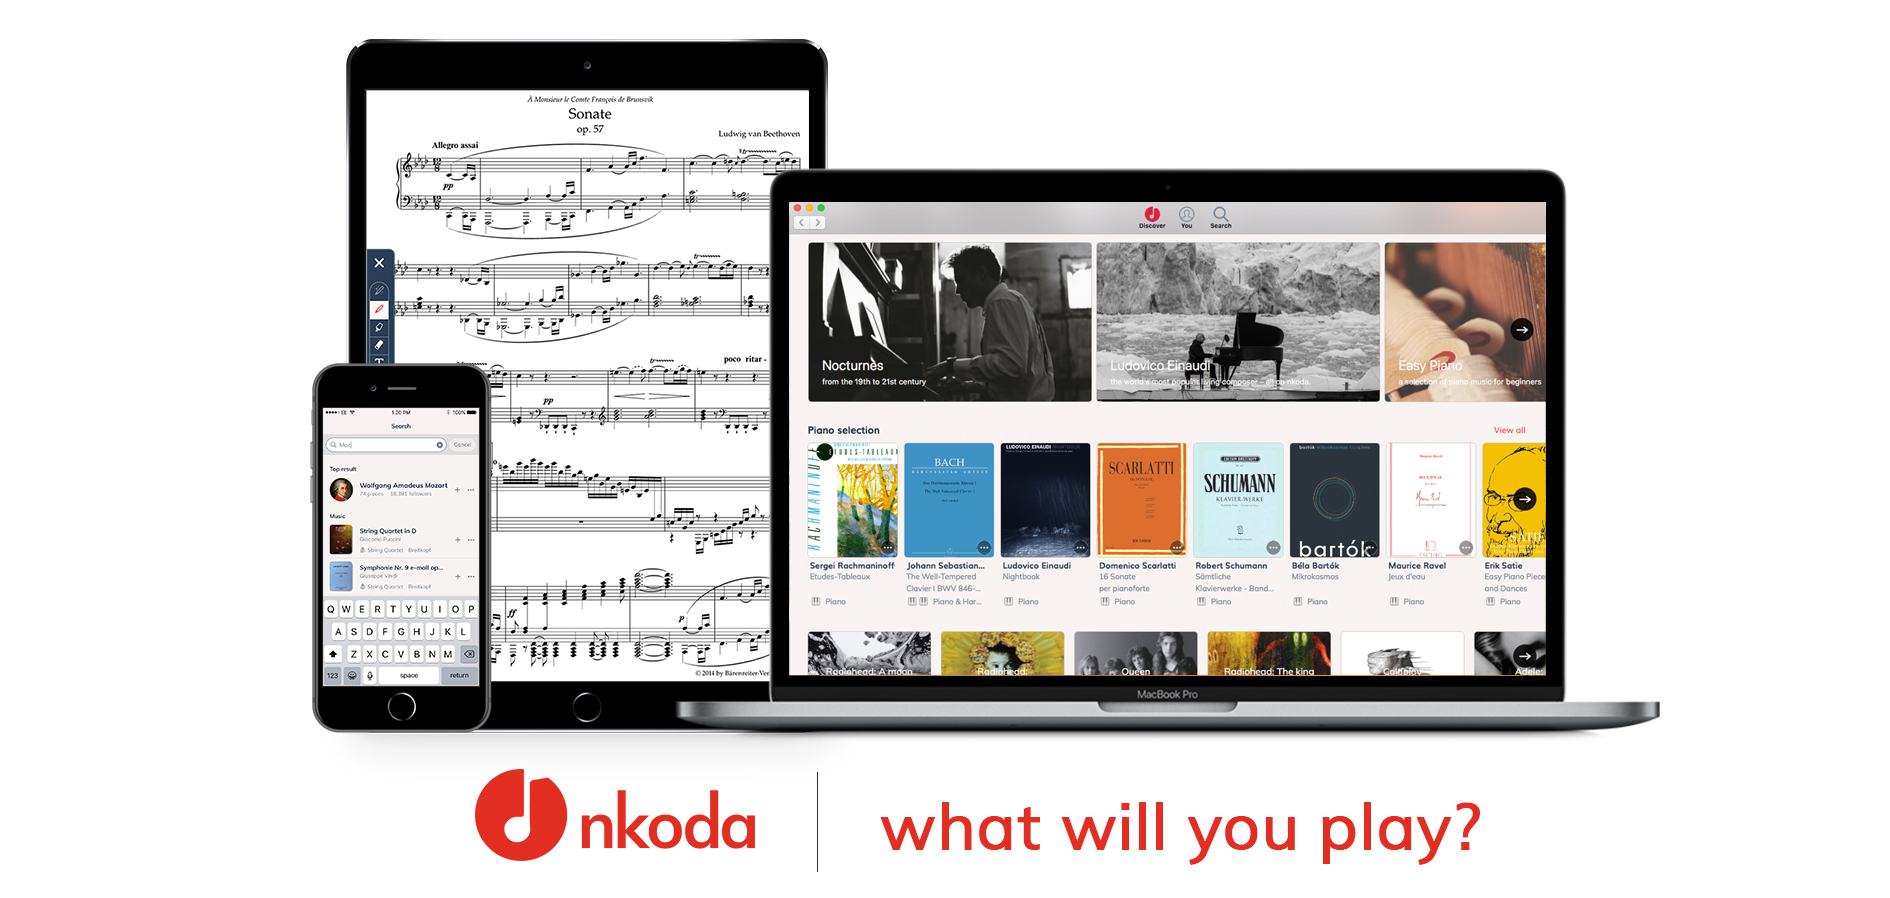 EXPLORE OUR CATALOGUE ON NKODA